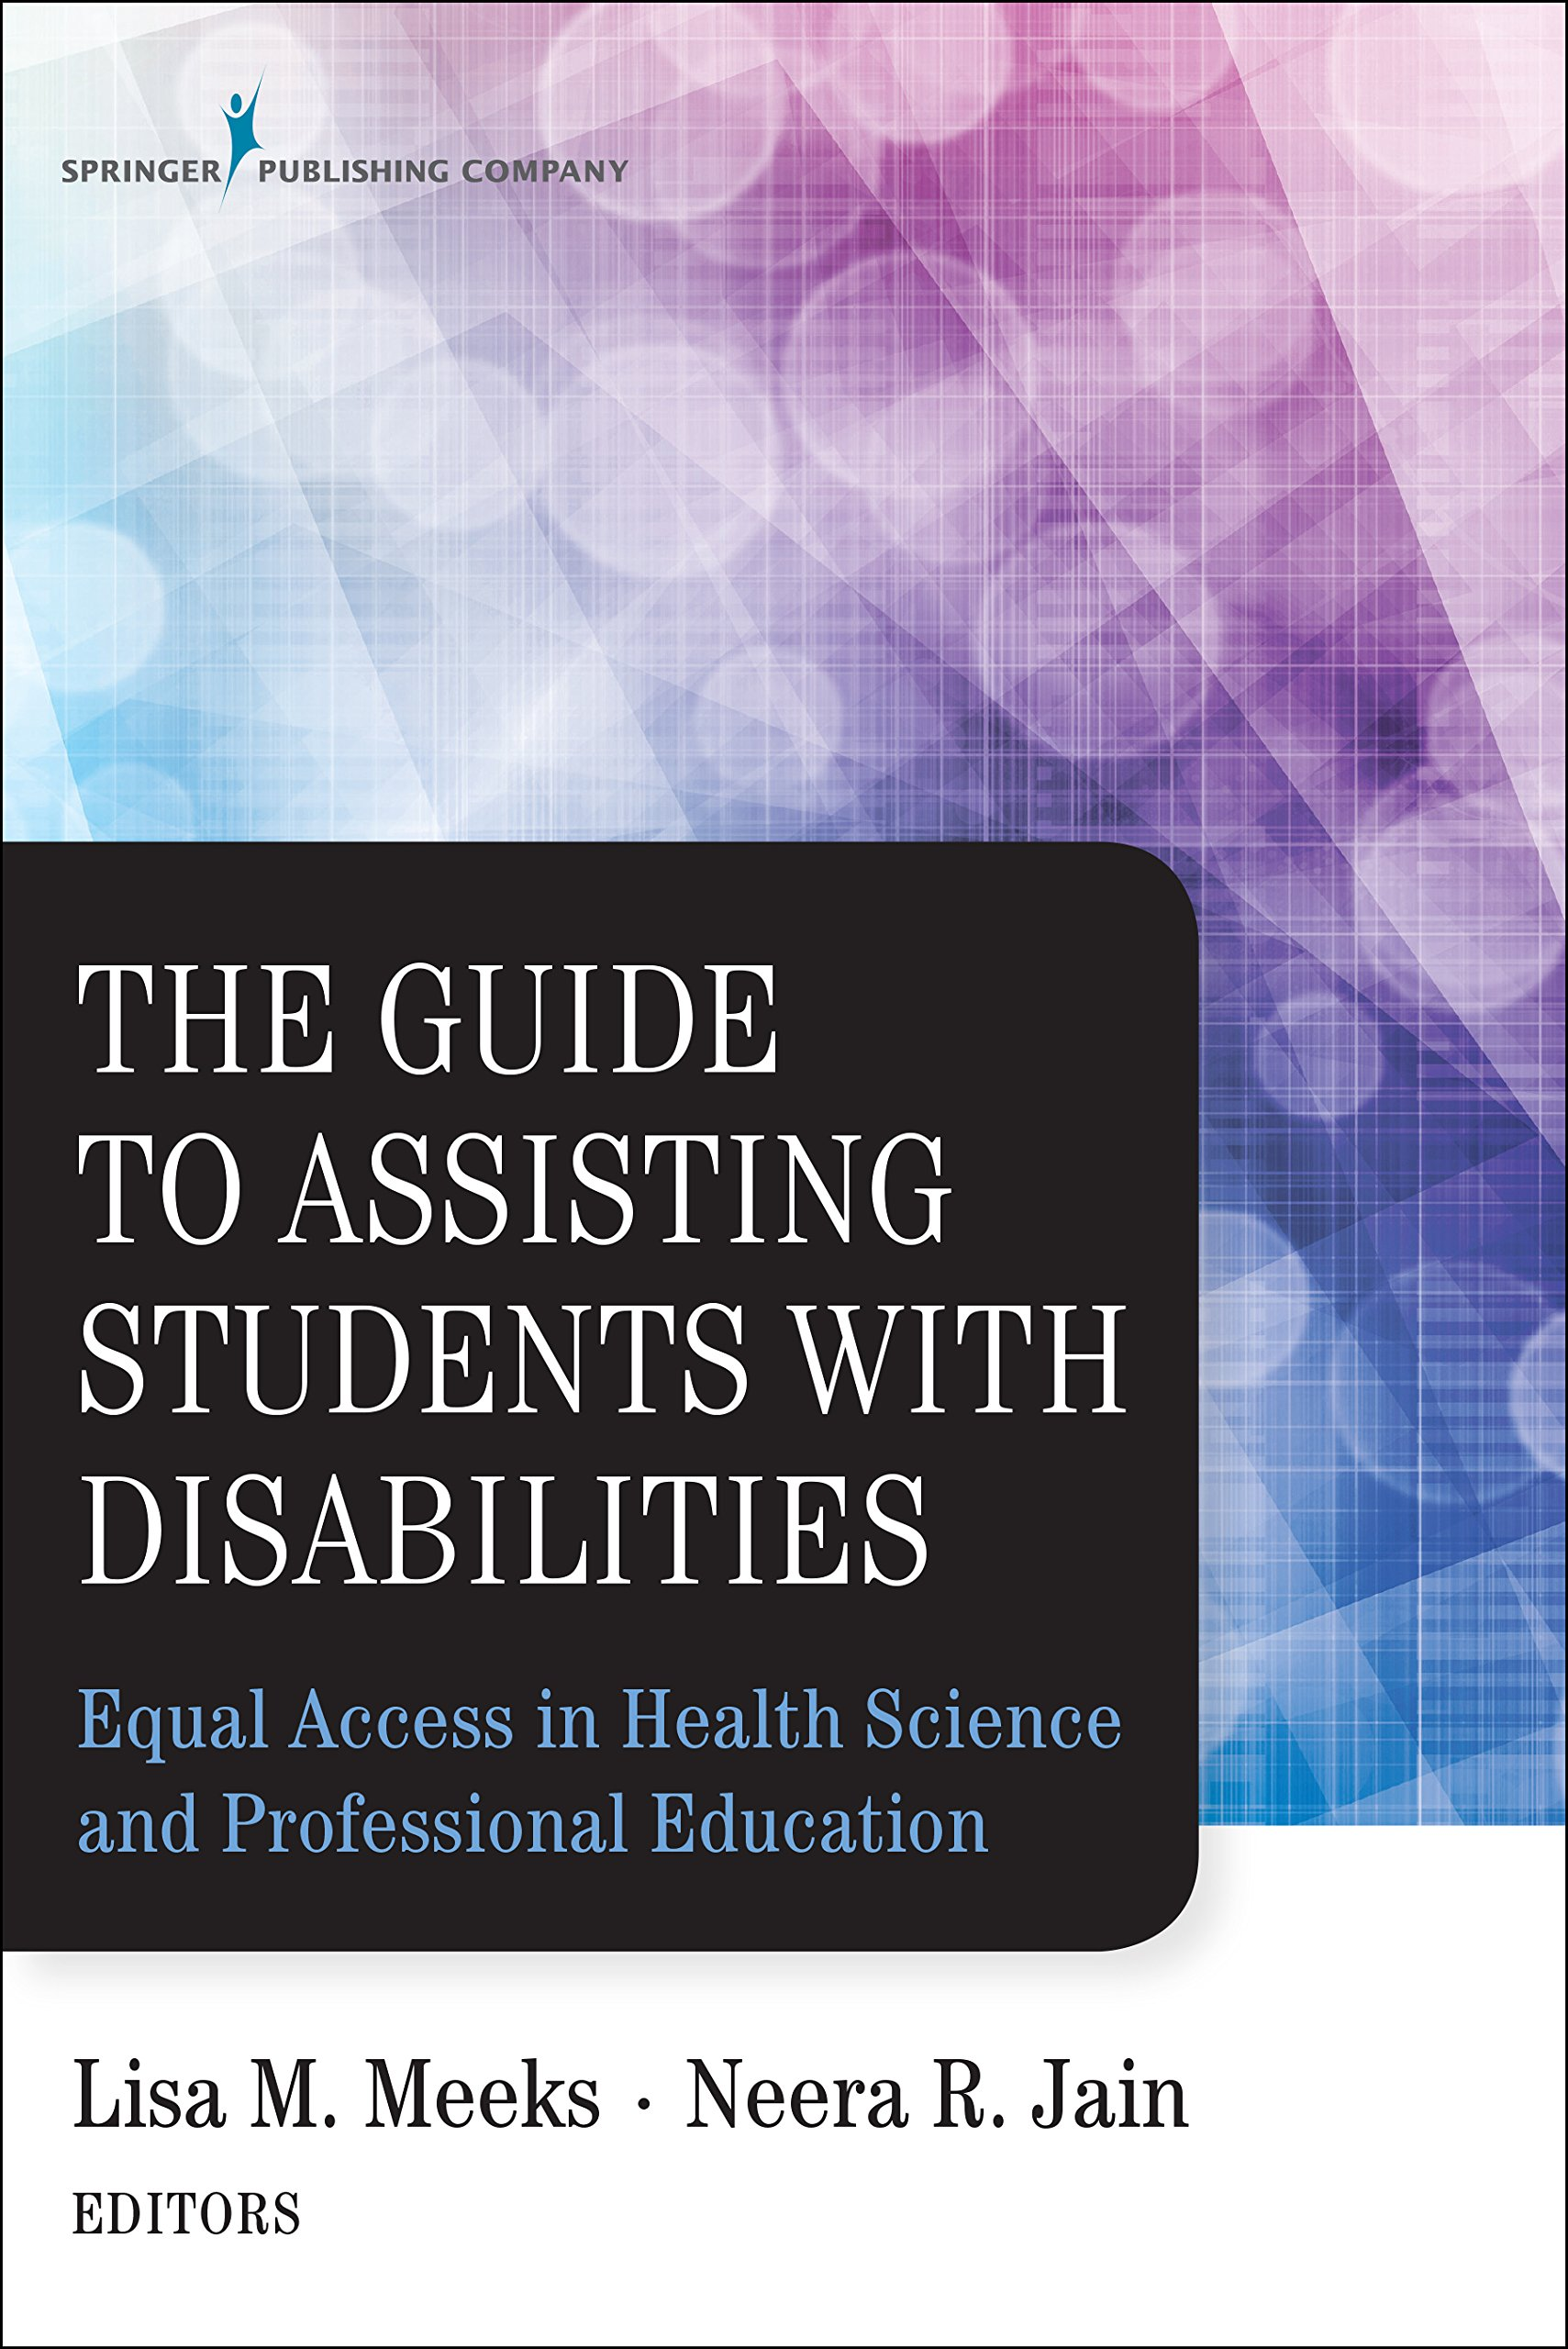 Image OfThe Guide To Assisting Students With Disabilities: Equal Access In Health Science And Professional Education